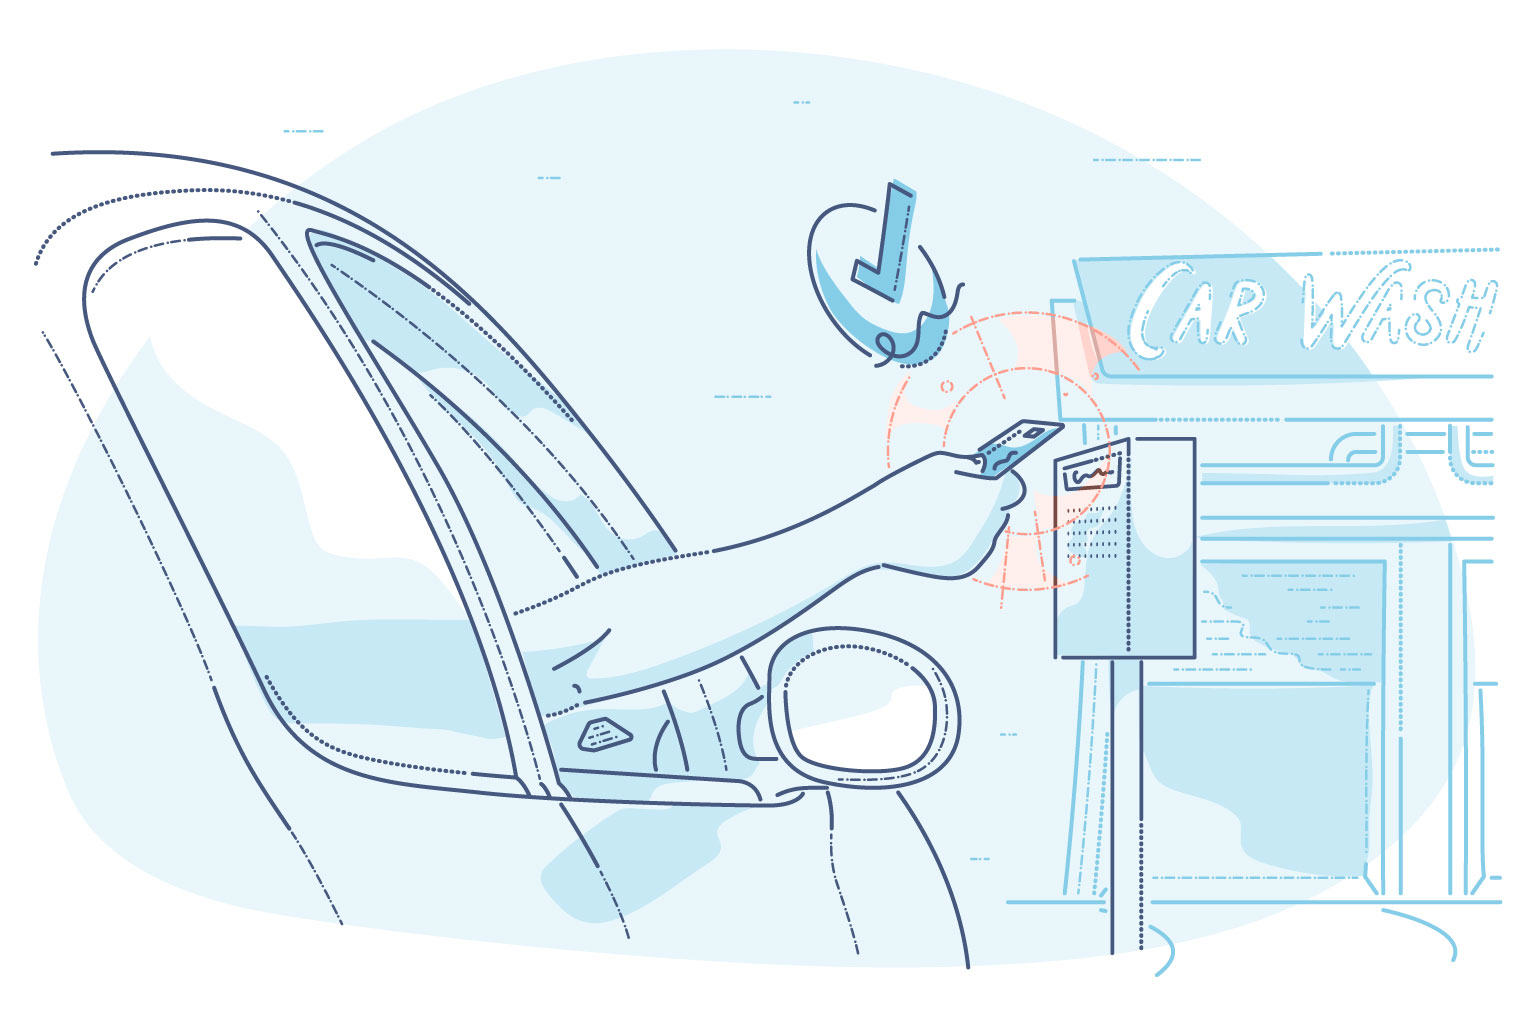 Payment systems for car wash businesses - hero body illustration of driver in vehicle at car wash, making payment at standalone card processor